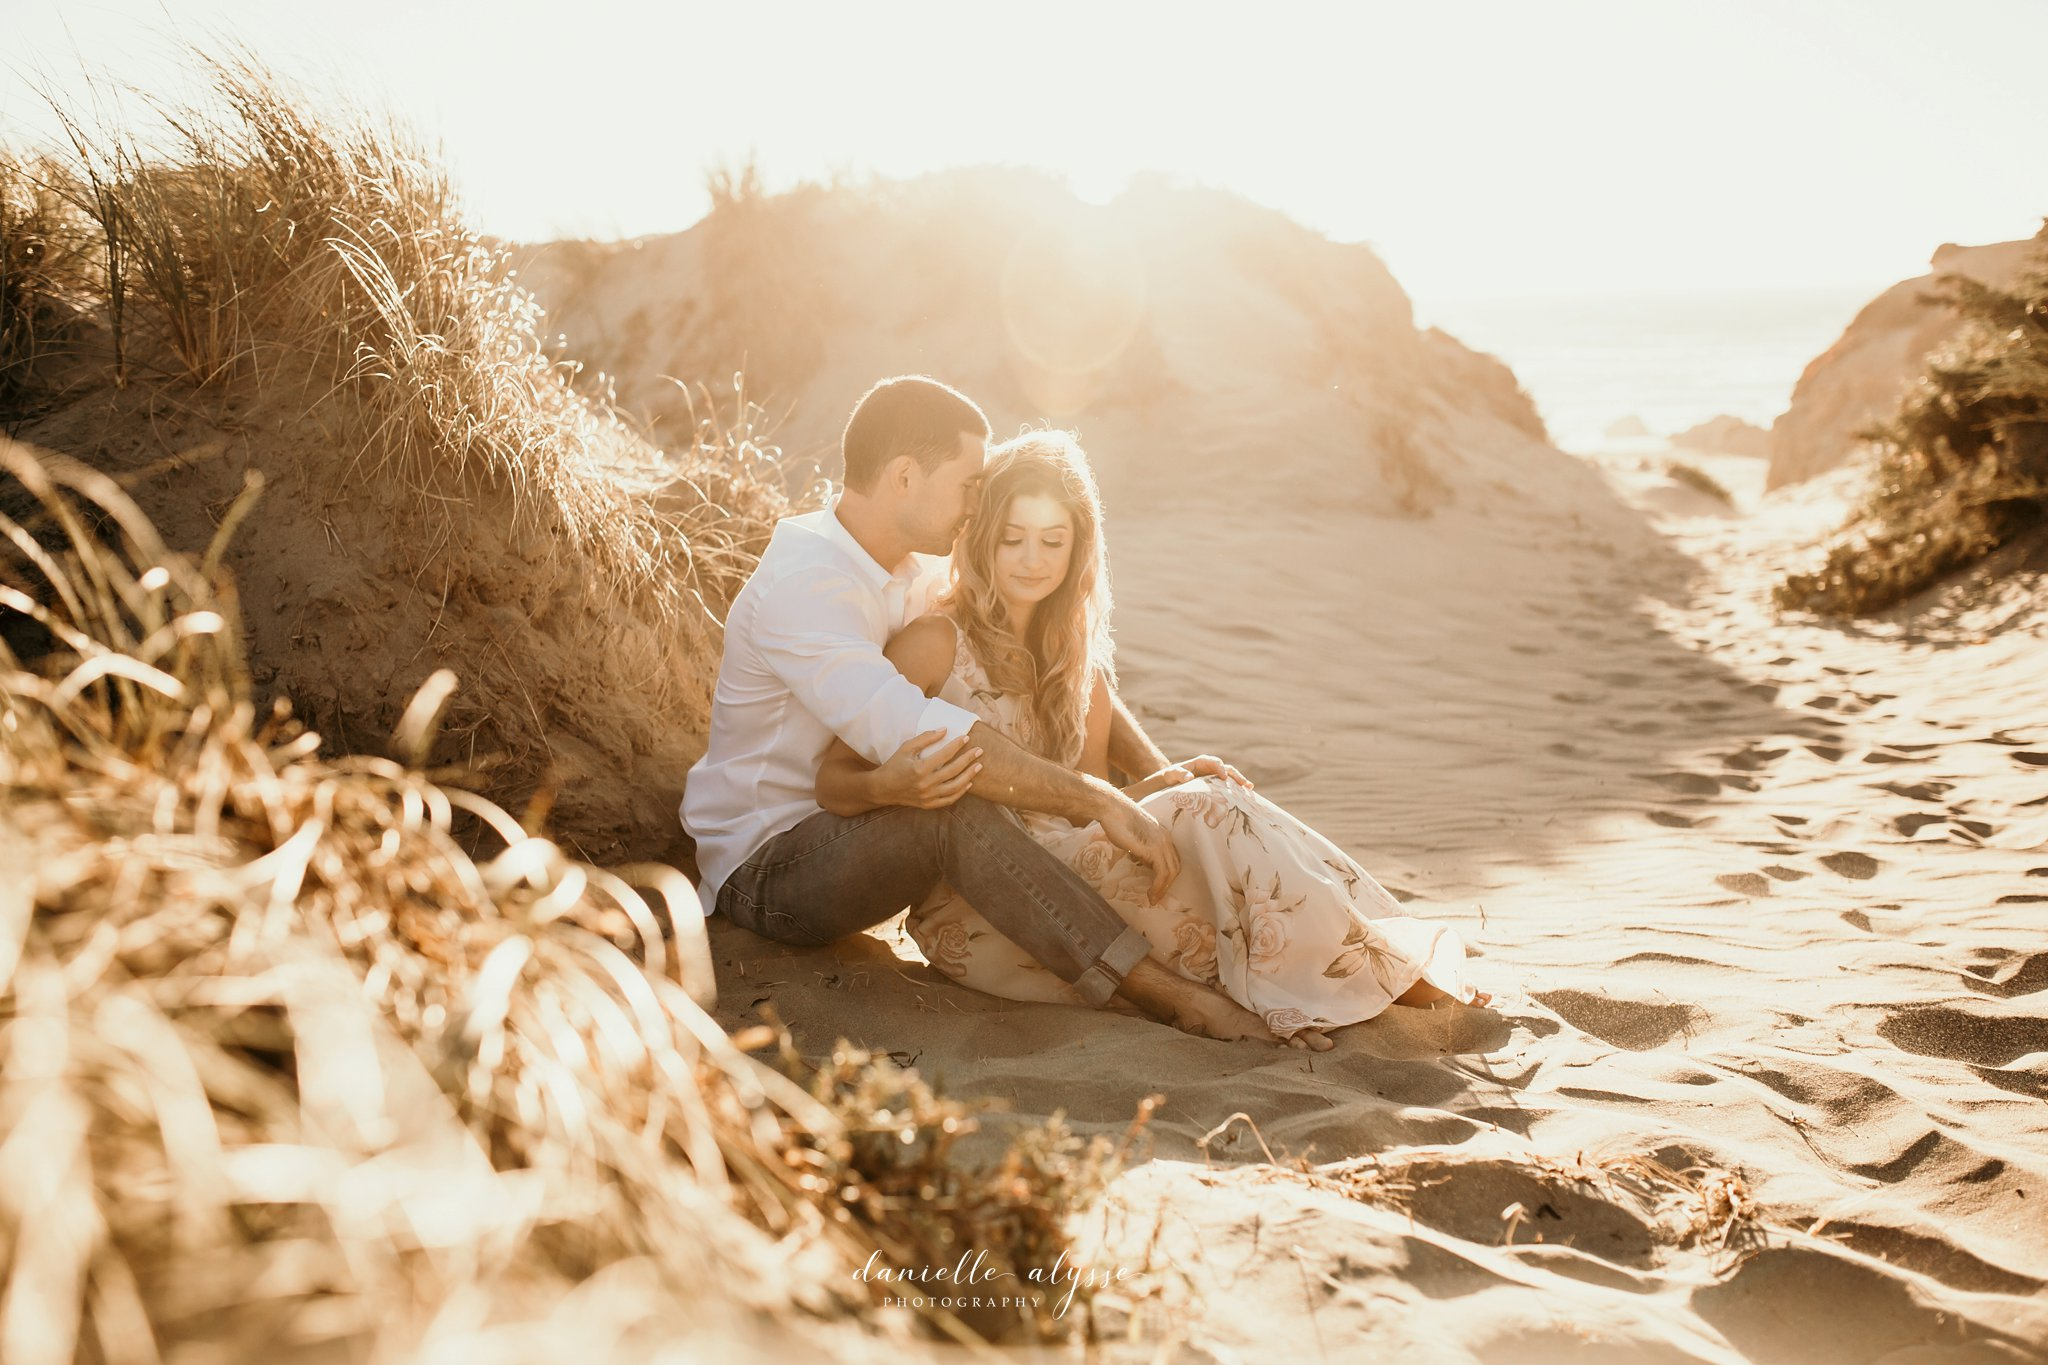 180804_engagement_katie_matt_dillon_beach_napa_danielle_alysse_photography_blog_42_WEB.jpg